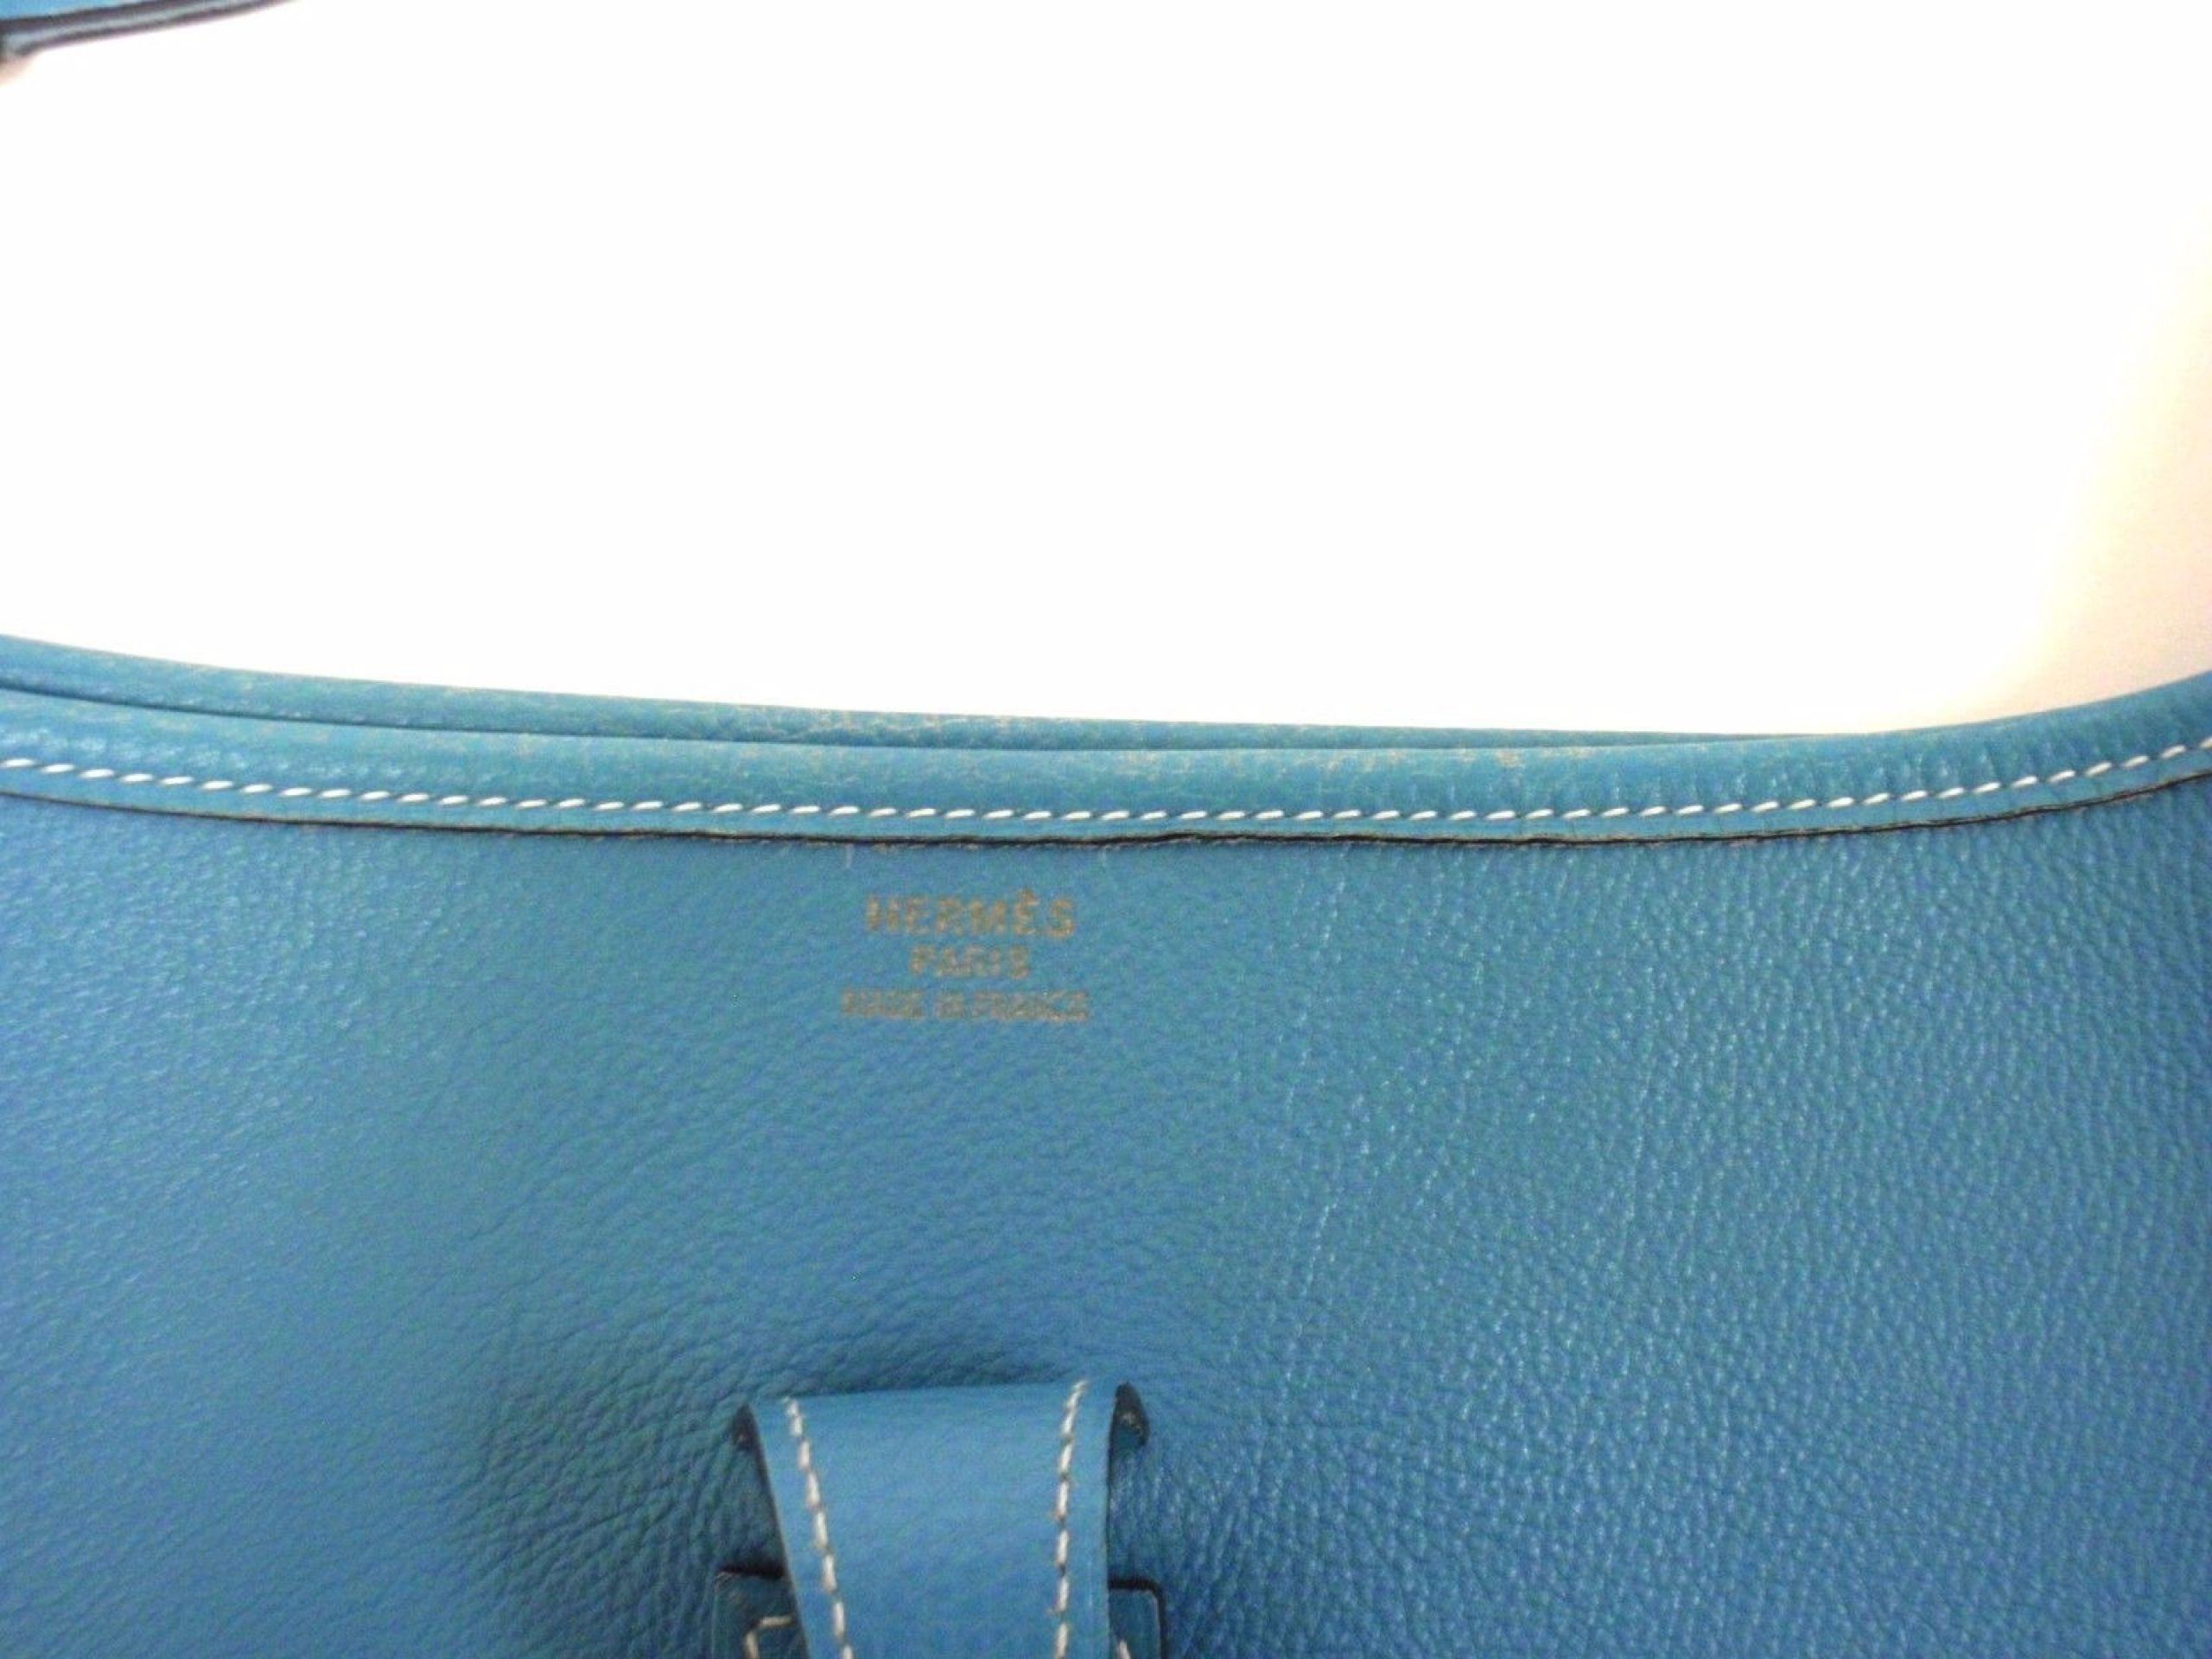 AUTHENTIC! HERMES EVELYNE GM BLUE JEAN CLEMENCE LEATHER GHW SHOULDER BAG